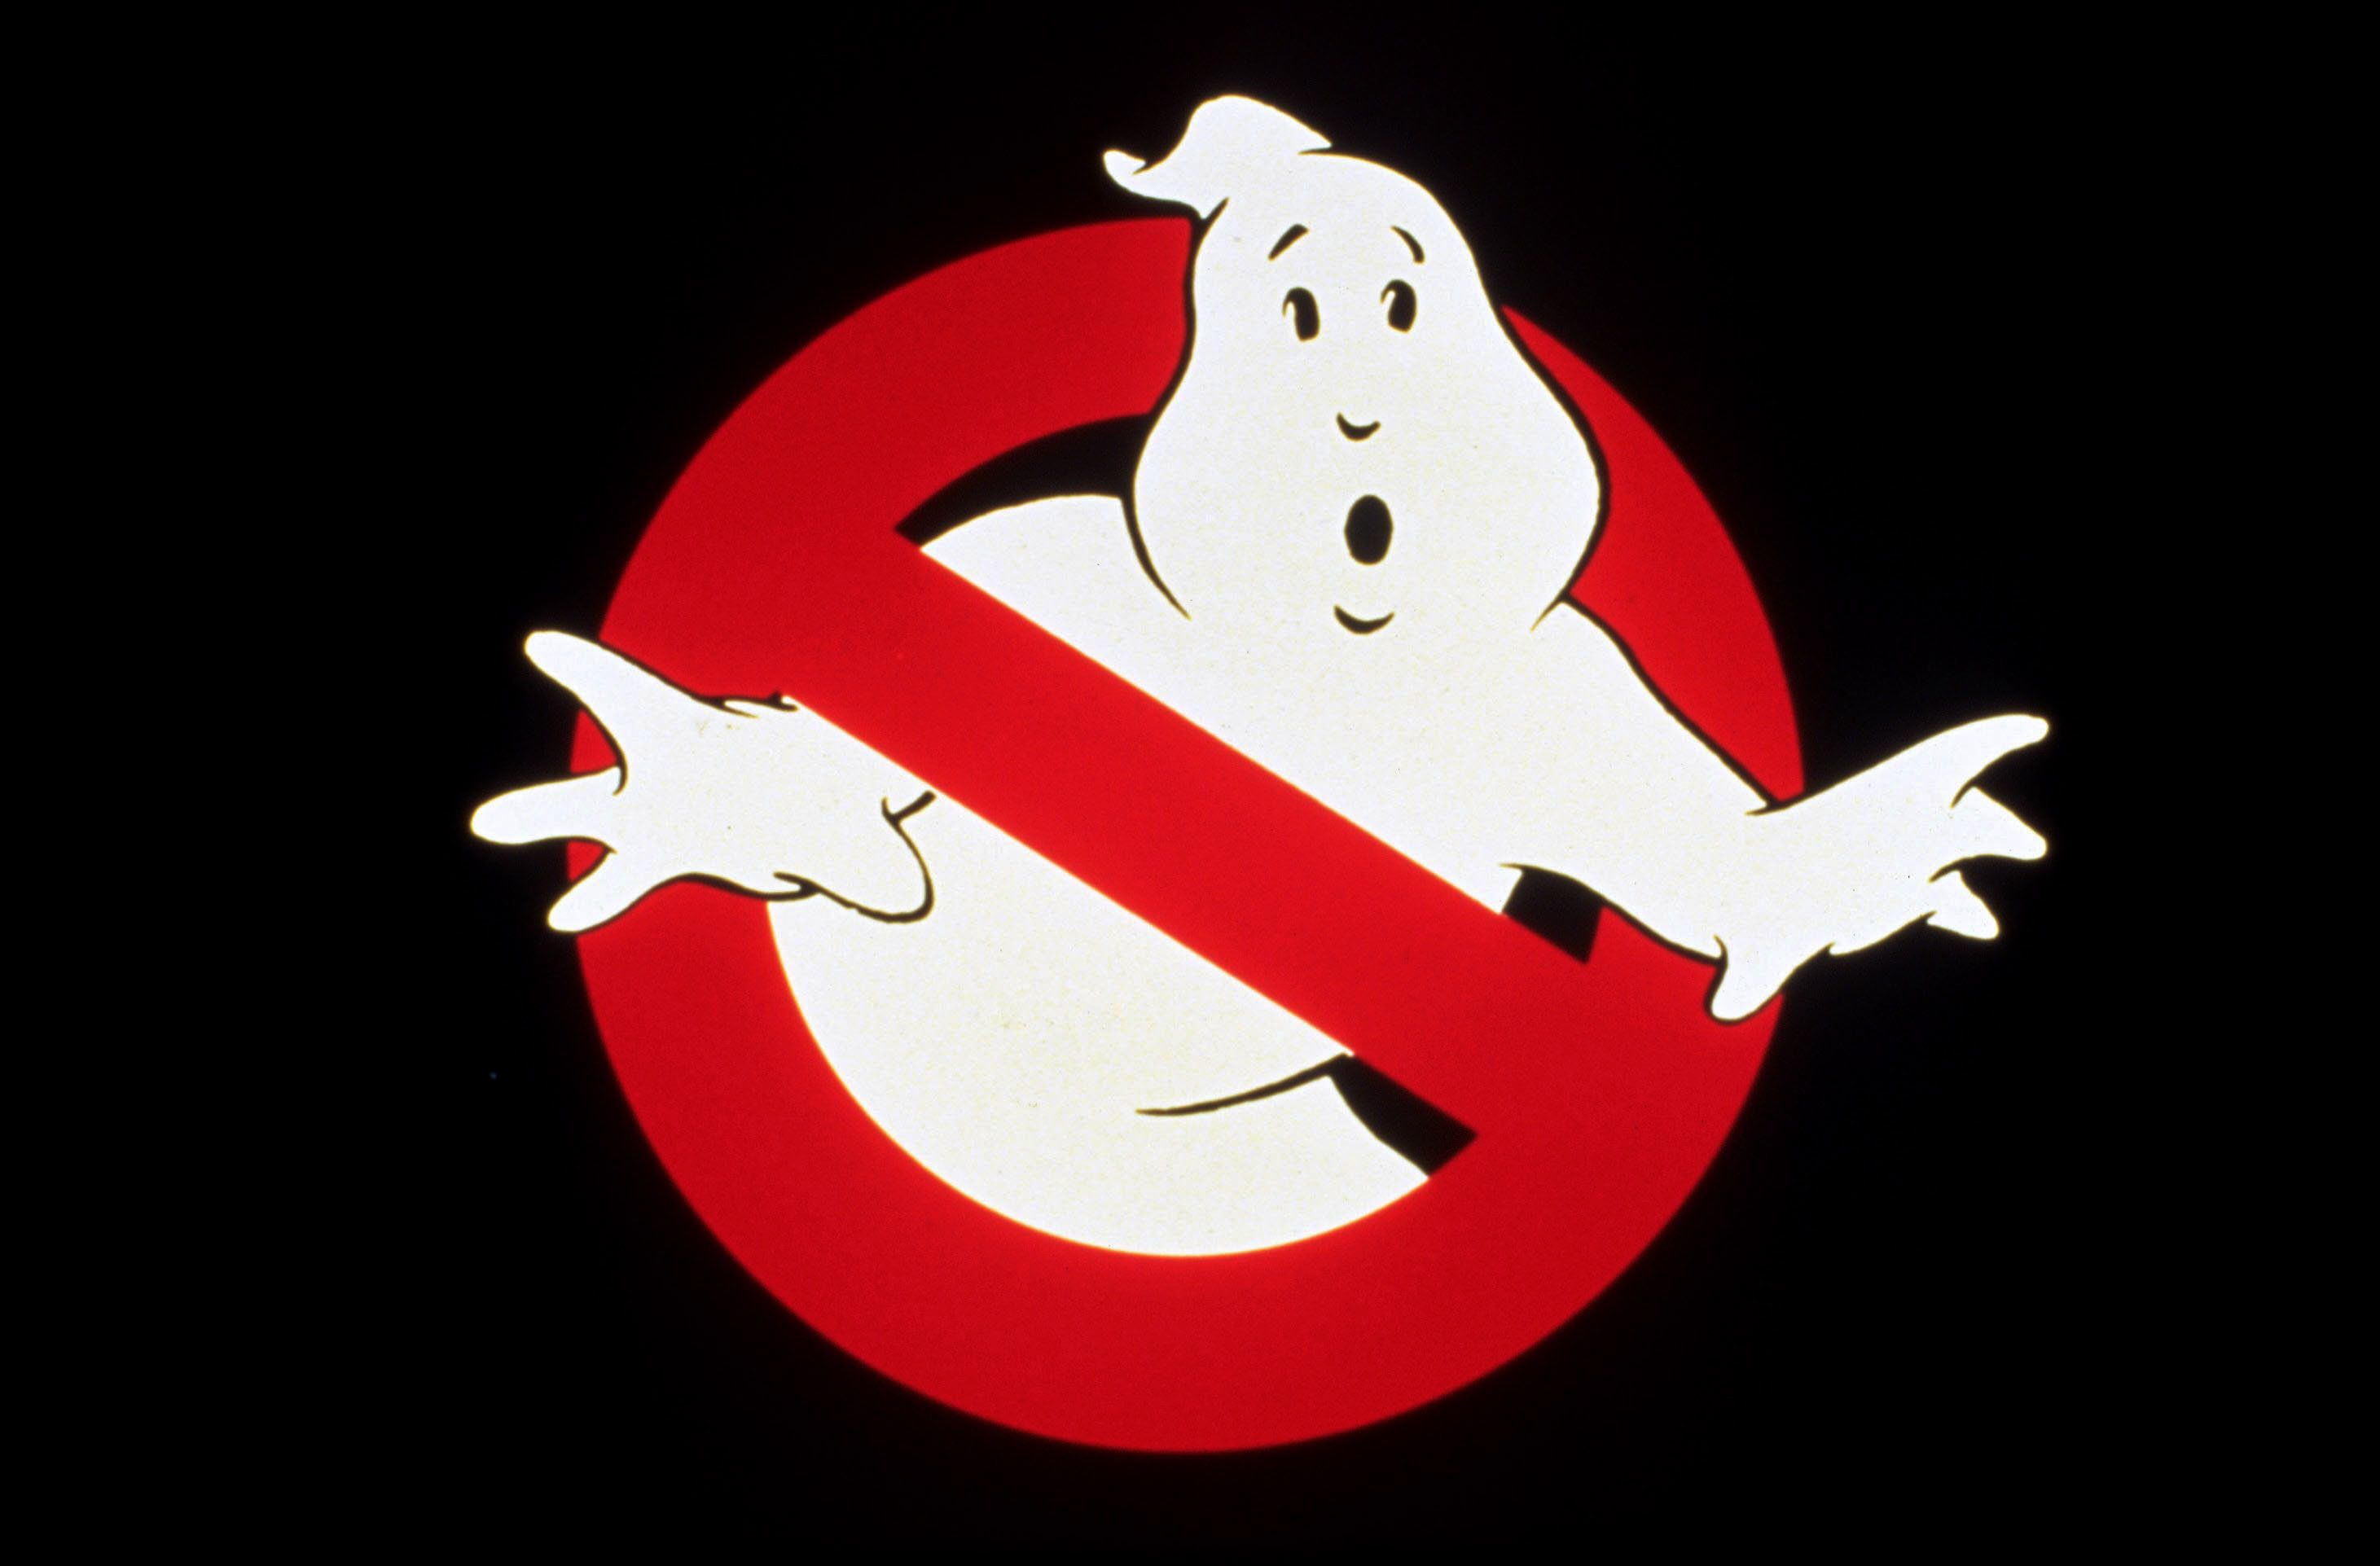 The iconic 'Ghostbusters'